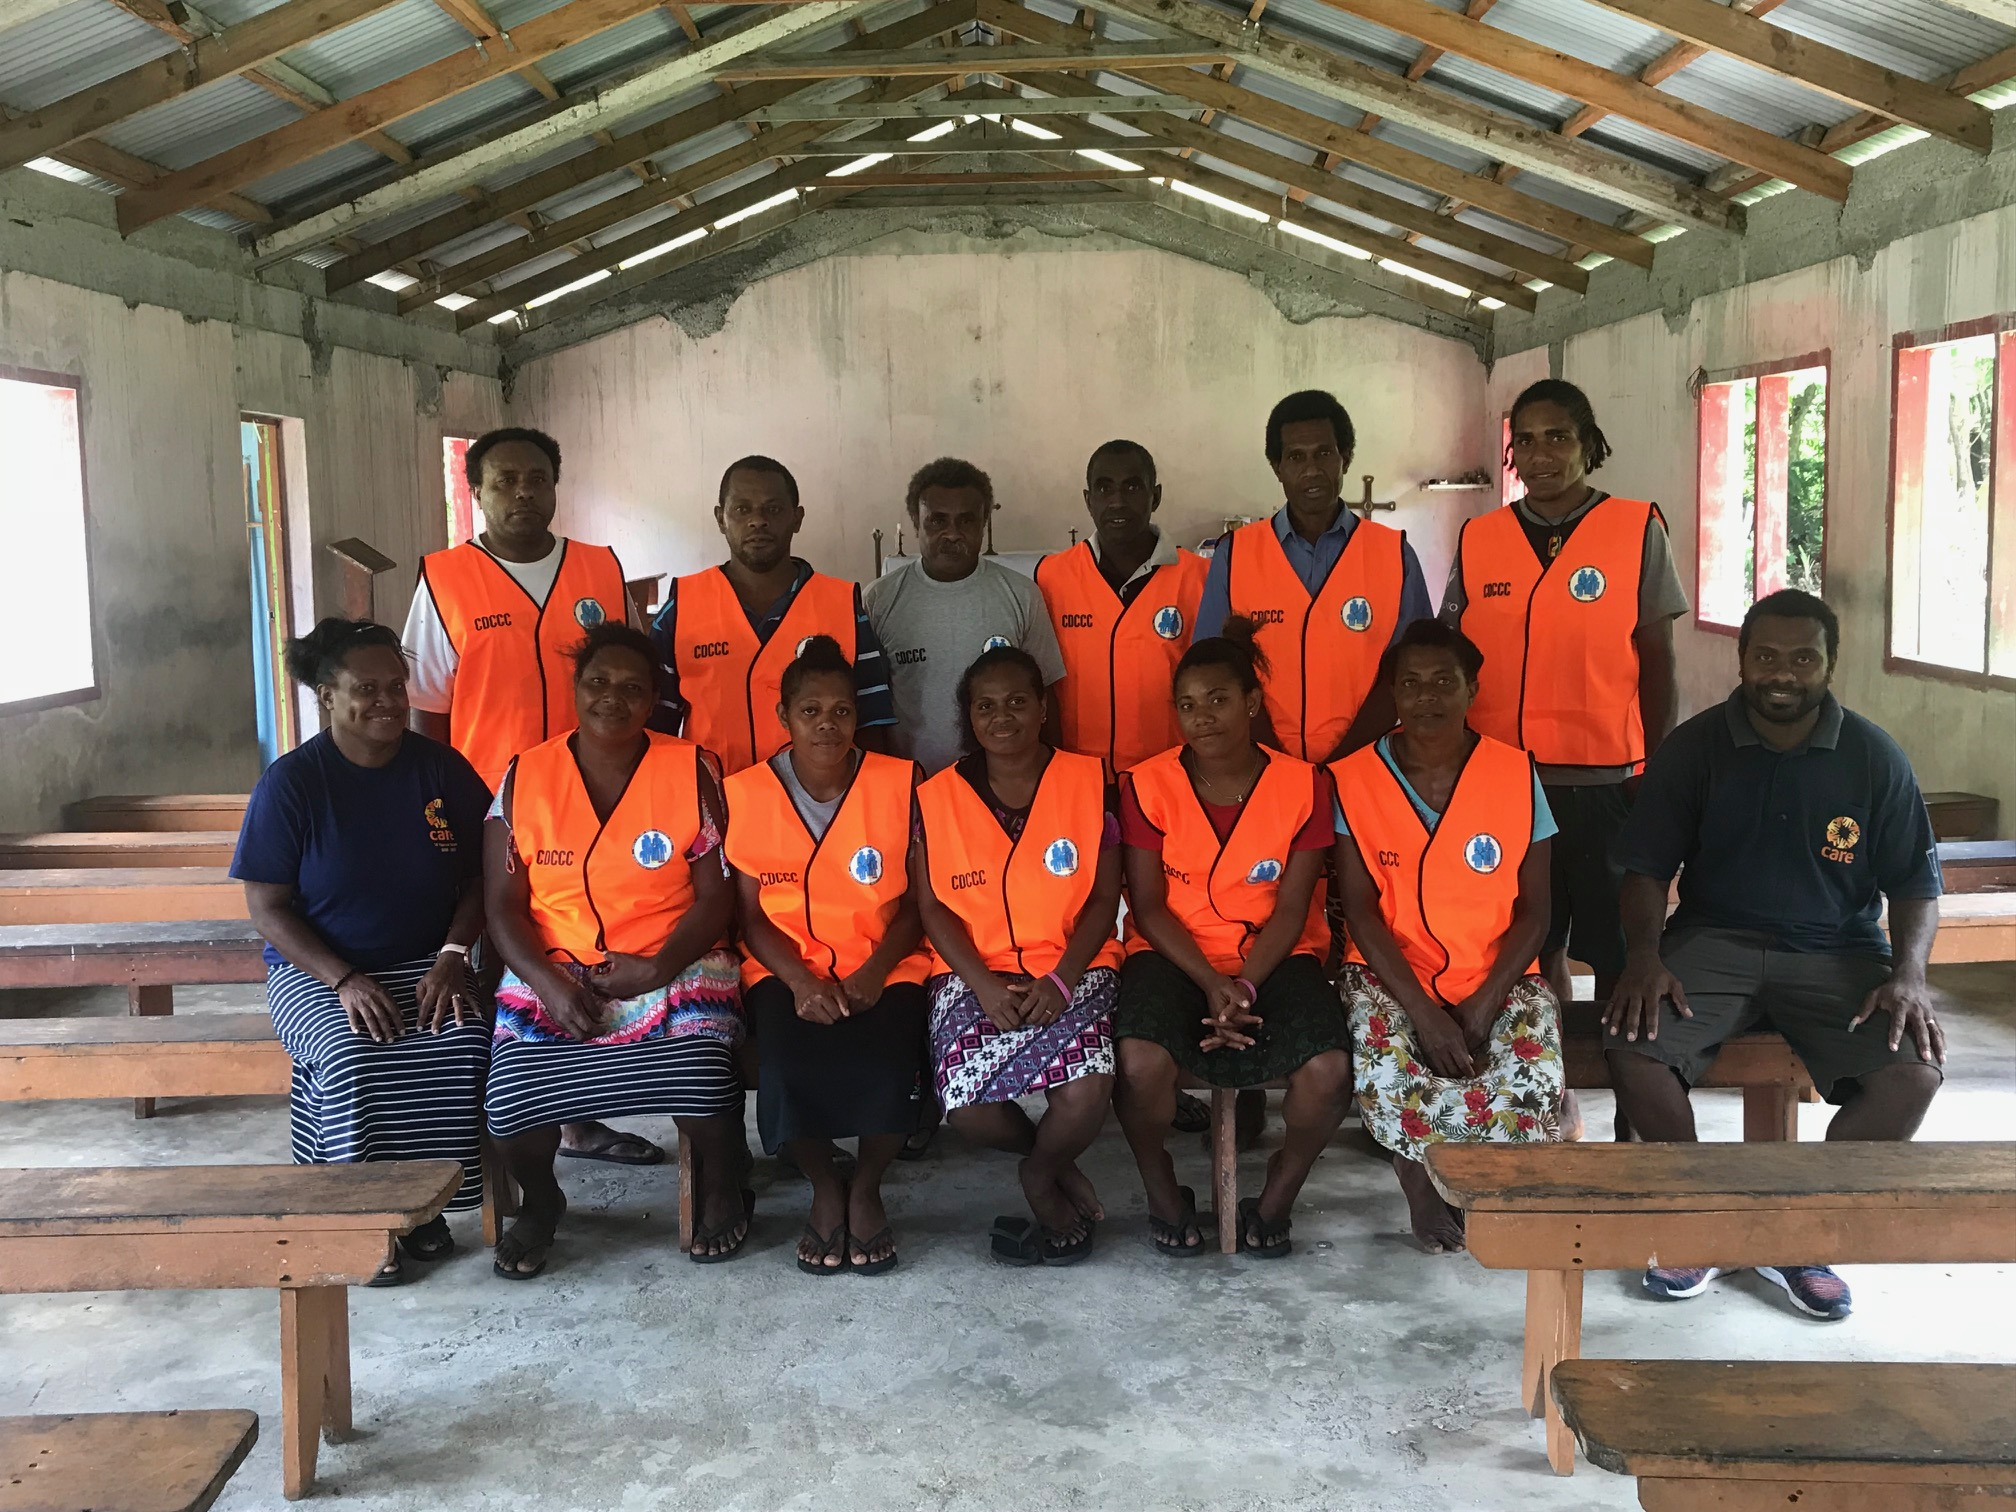 Above: New CDCCC committees in Maewo have representatives from Ambae and Maewo to ensure both communities contribute to local disaster preparedness and response activities. Photo credit: CARE Vanuatu.